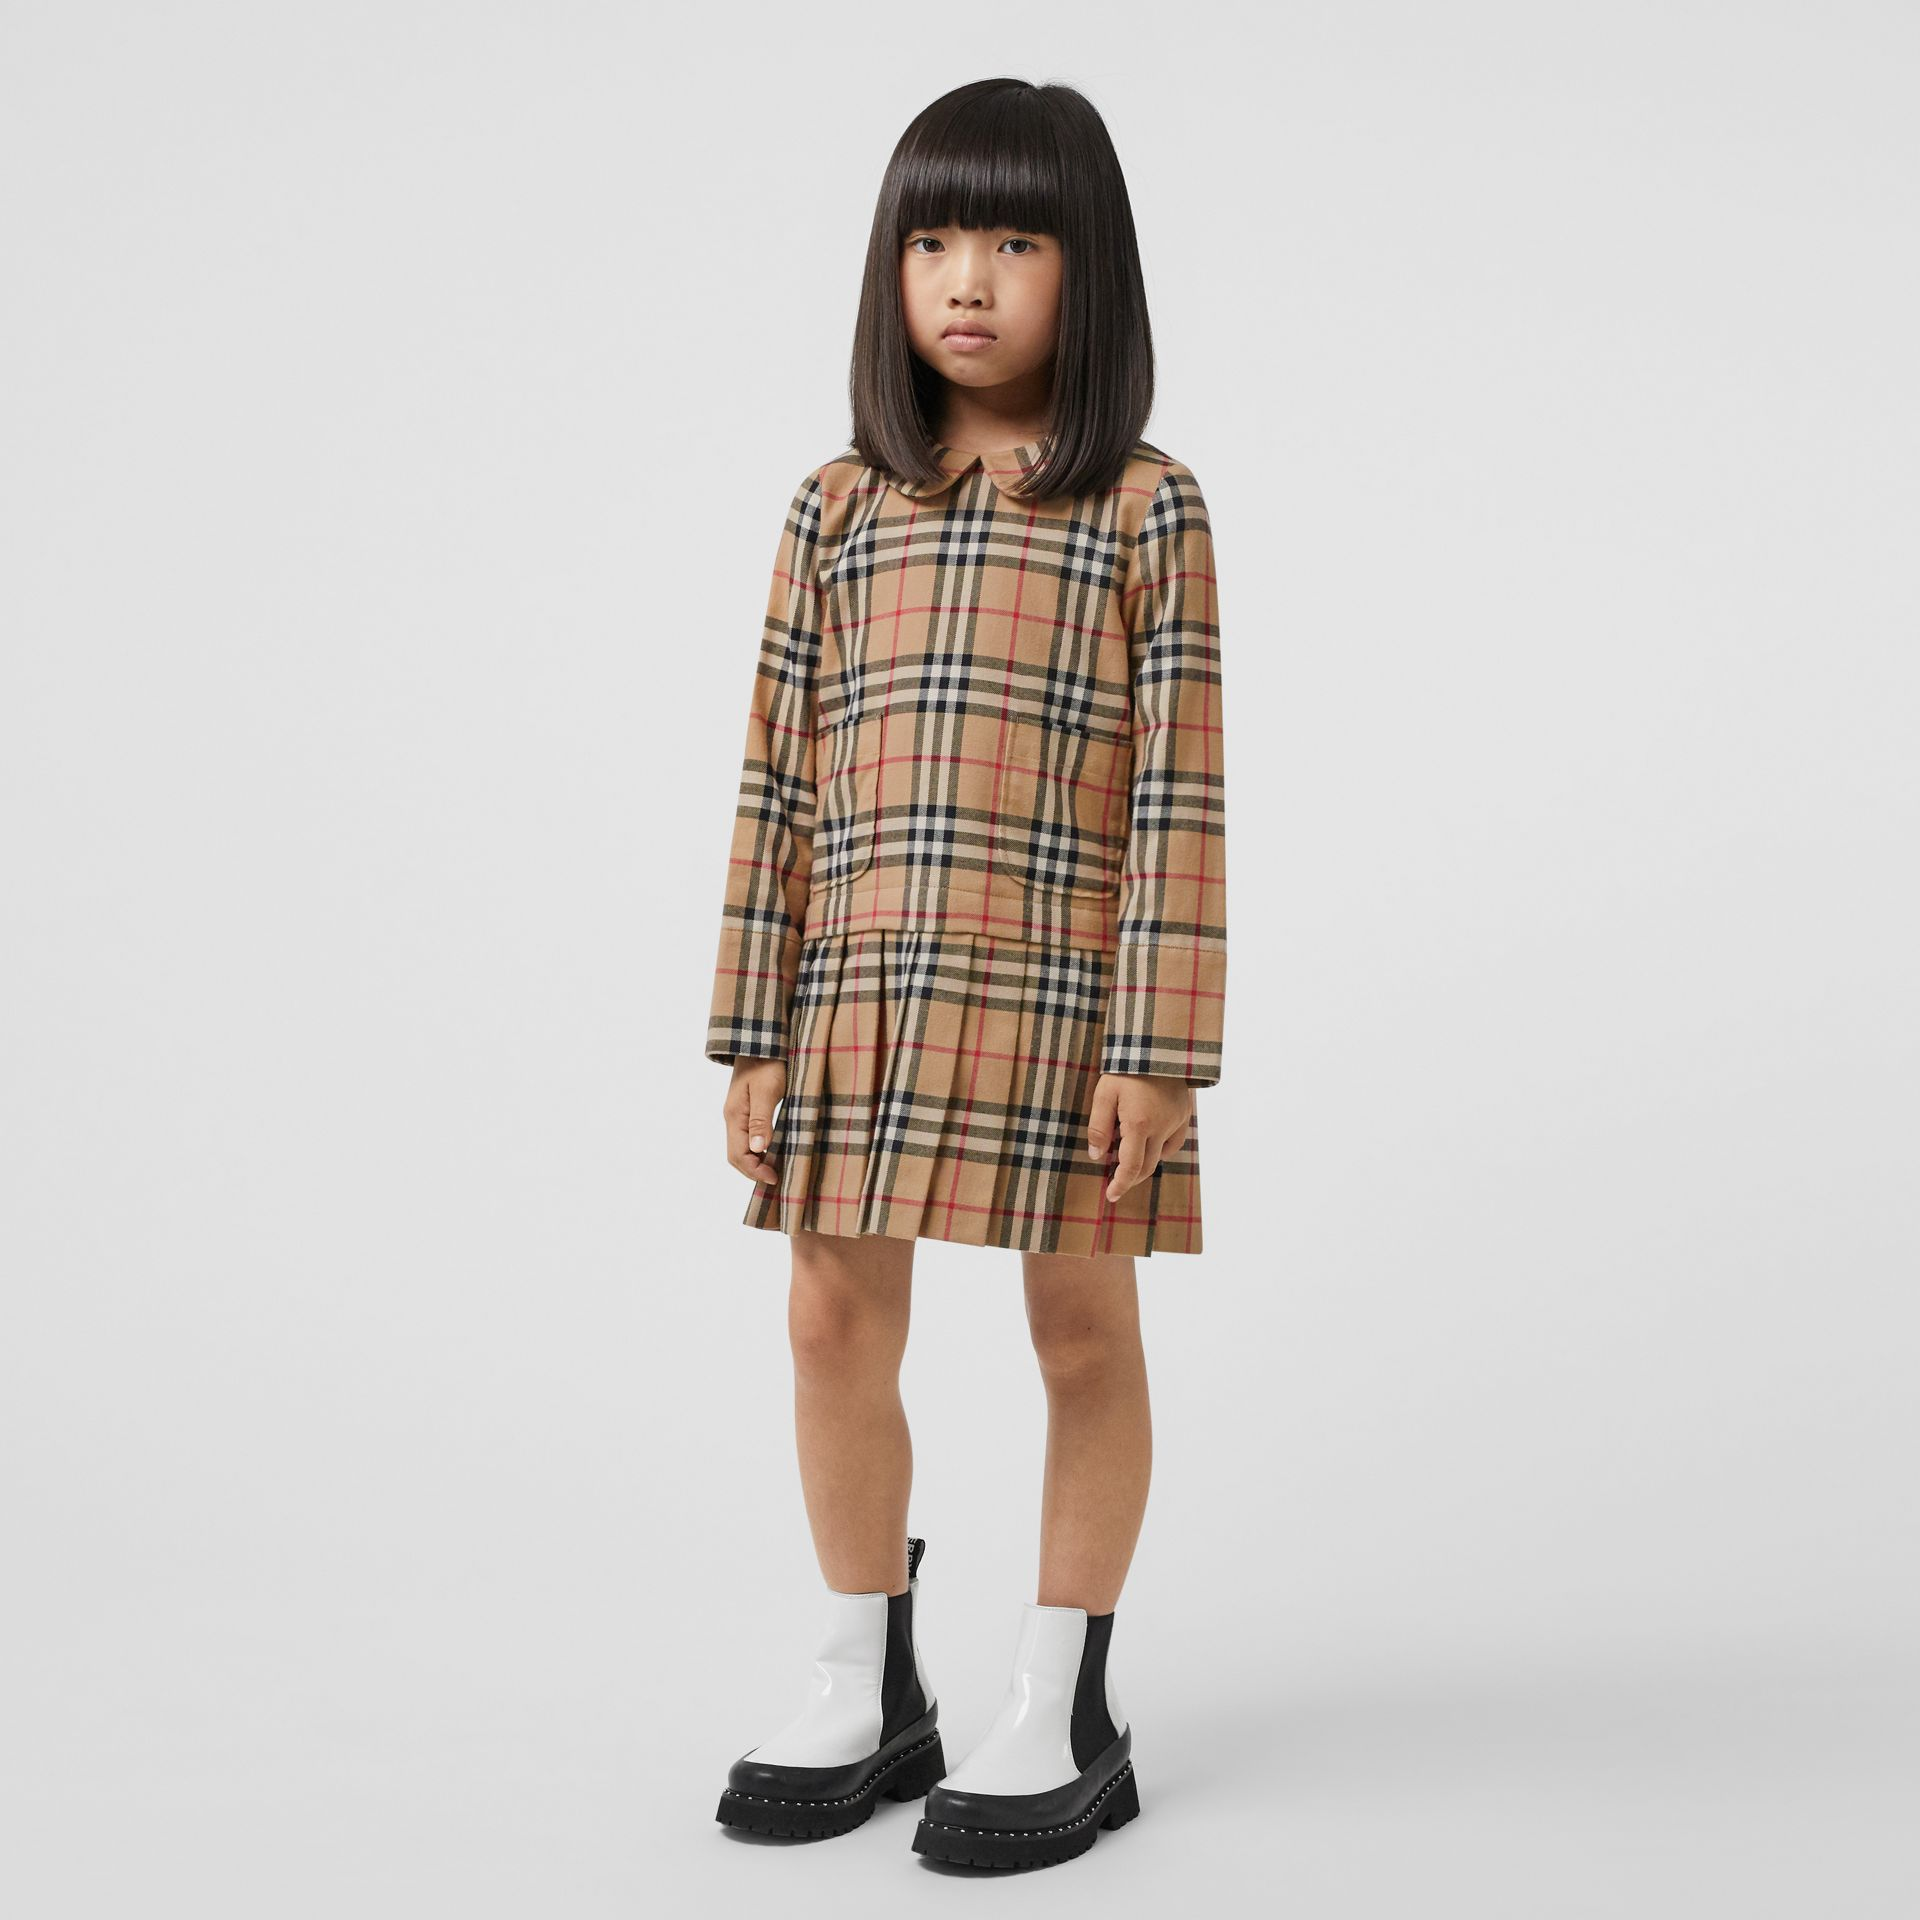 Peter Pan Collar Vintage Check Cotton Dress in Archive Beige | Burberry Singapore - gallery image 2